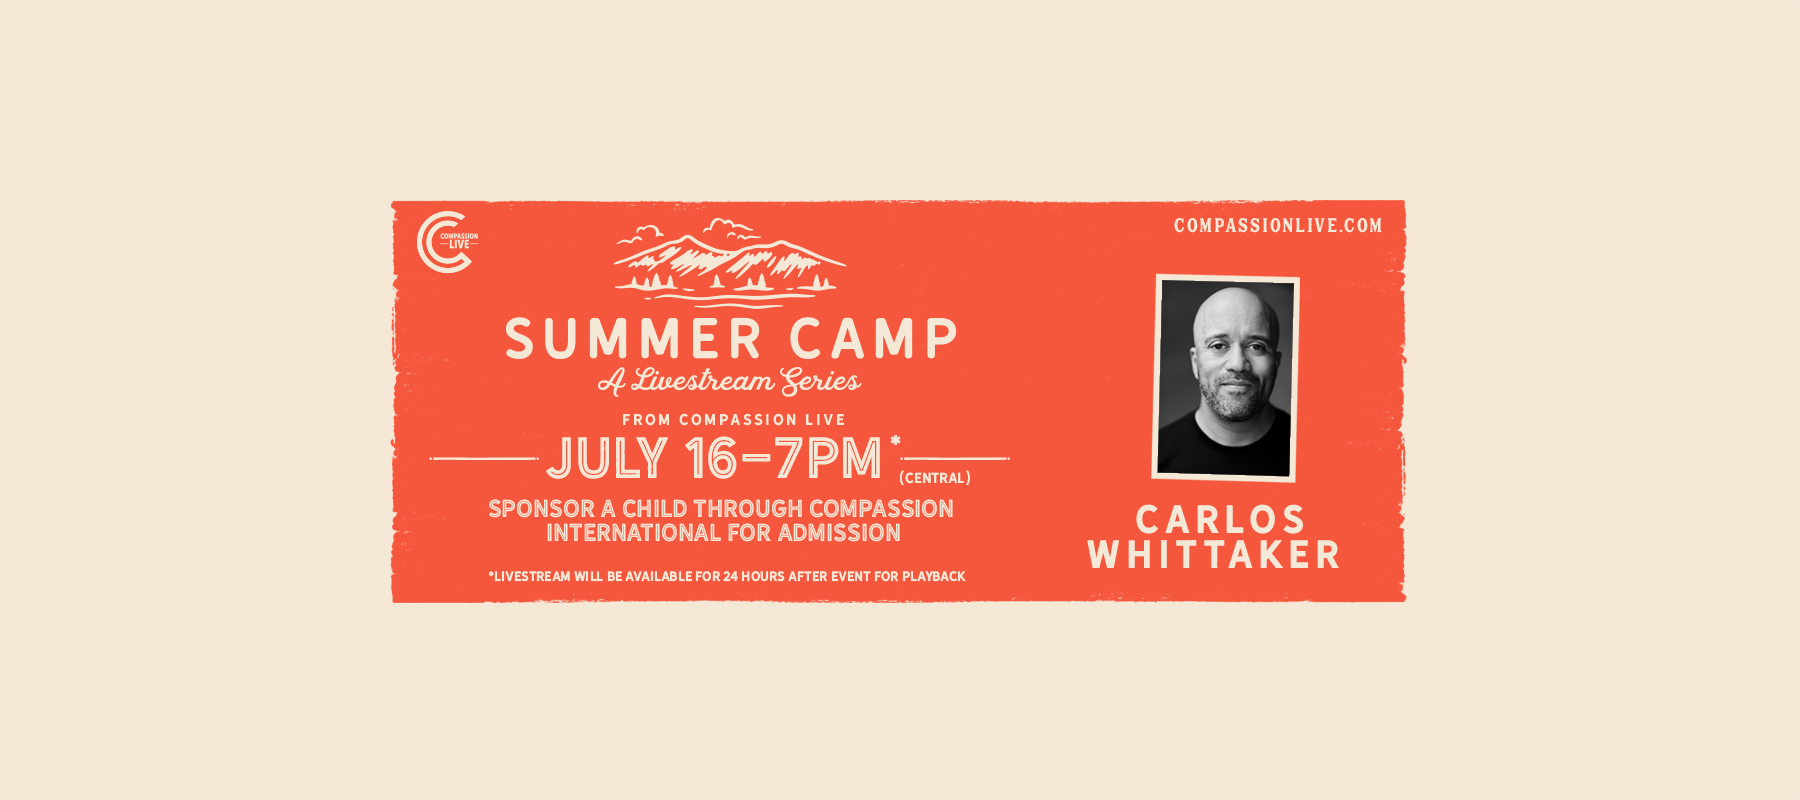 Summer Camp with Carlos Whittaker logo